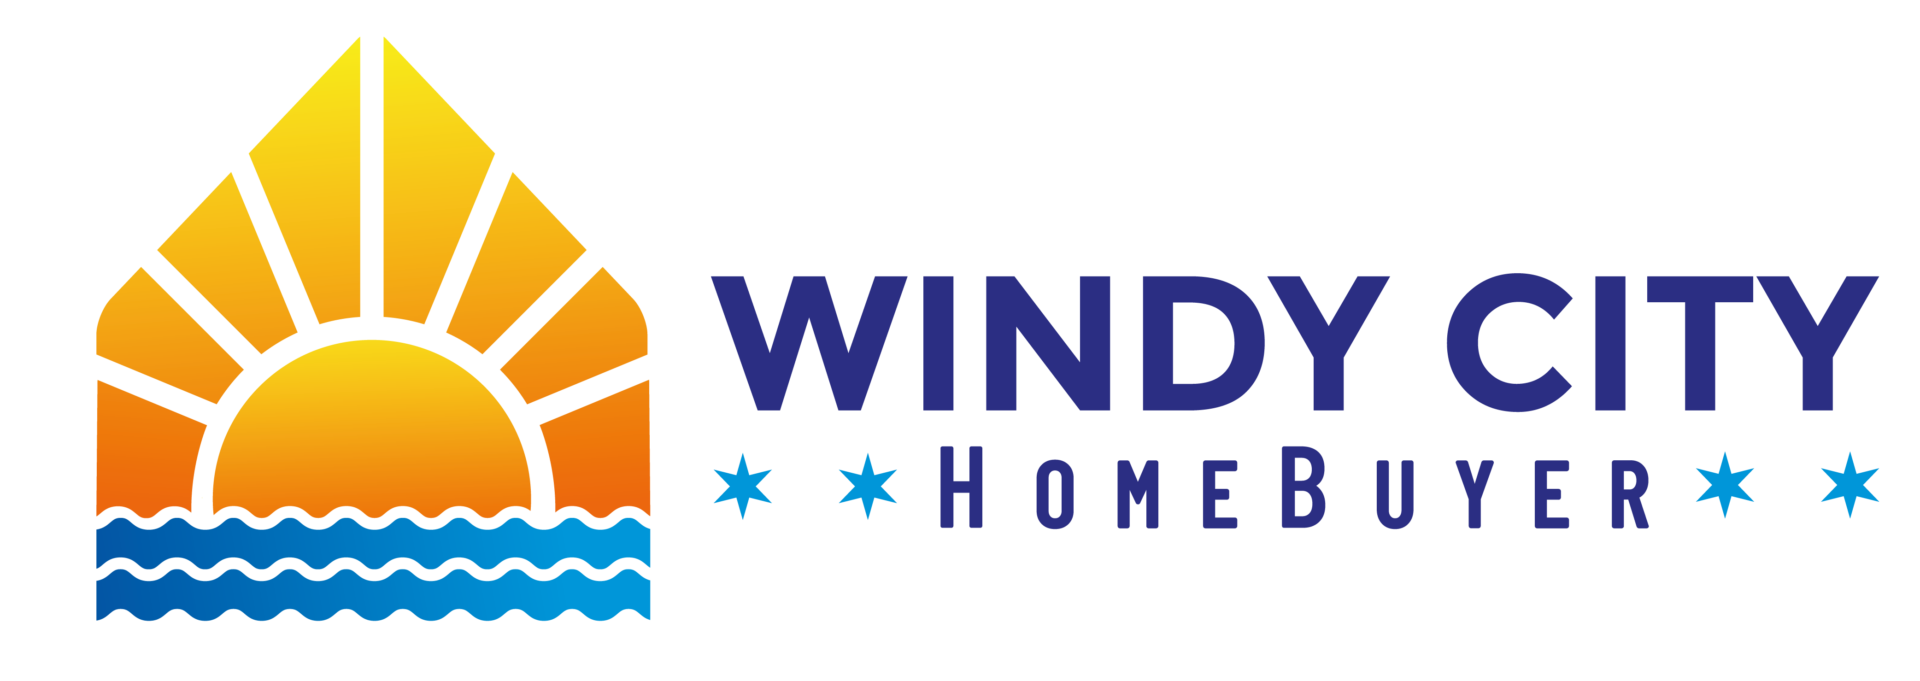 Windy City Home Buyer – We Buy Houses Fast for Cash! logo